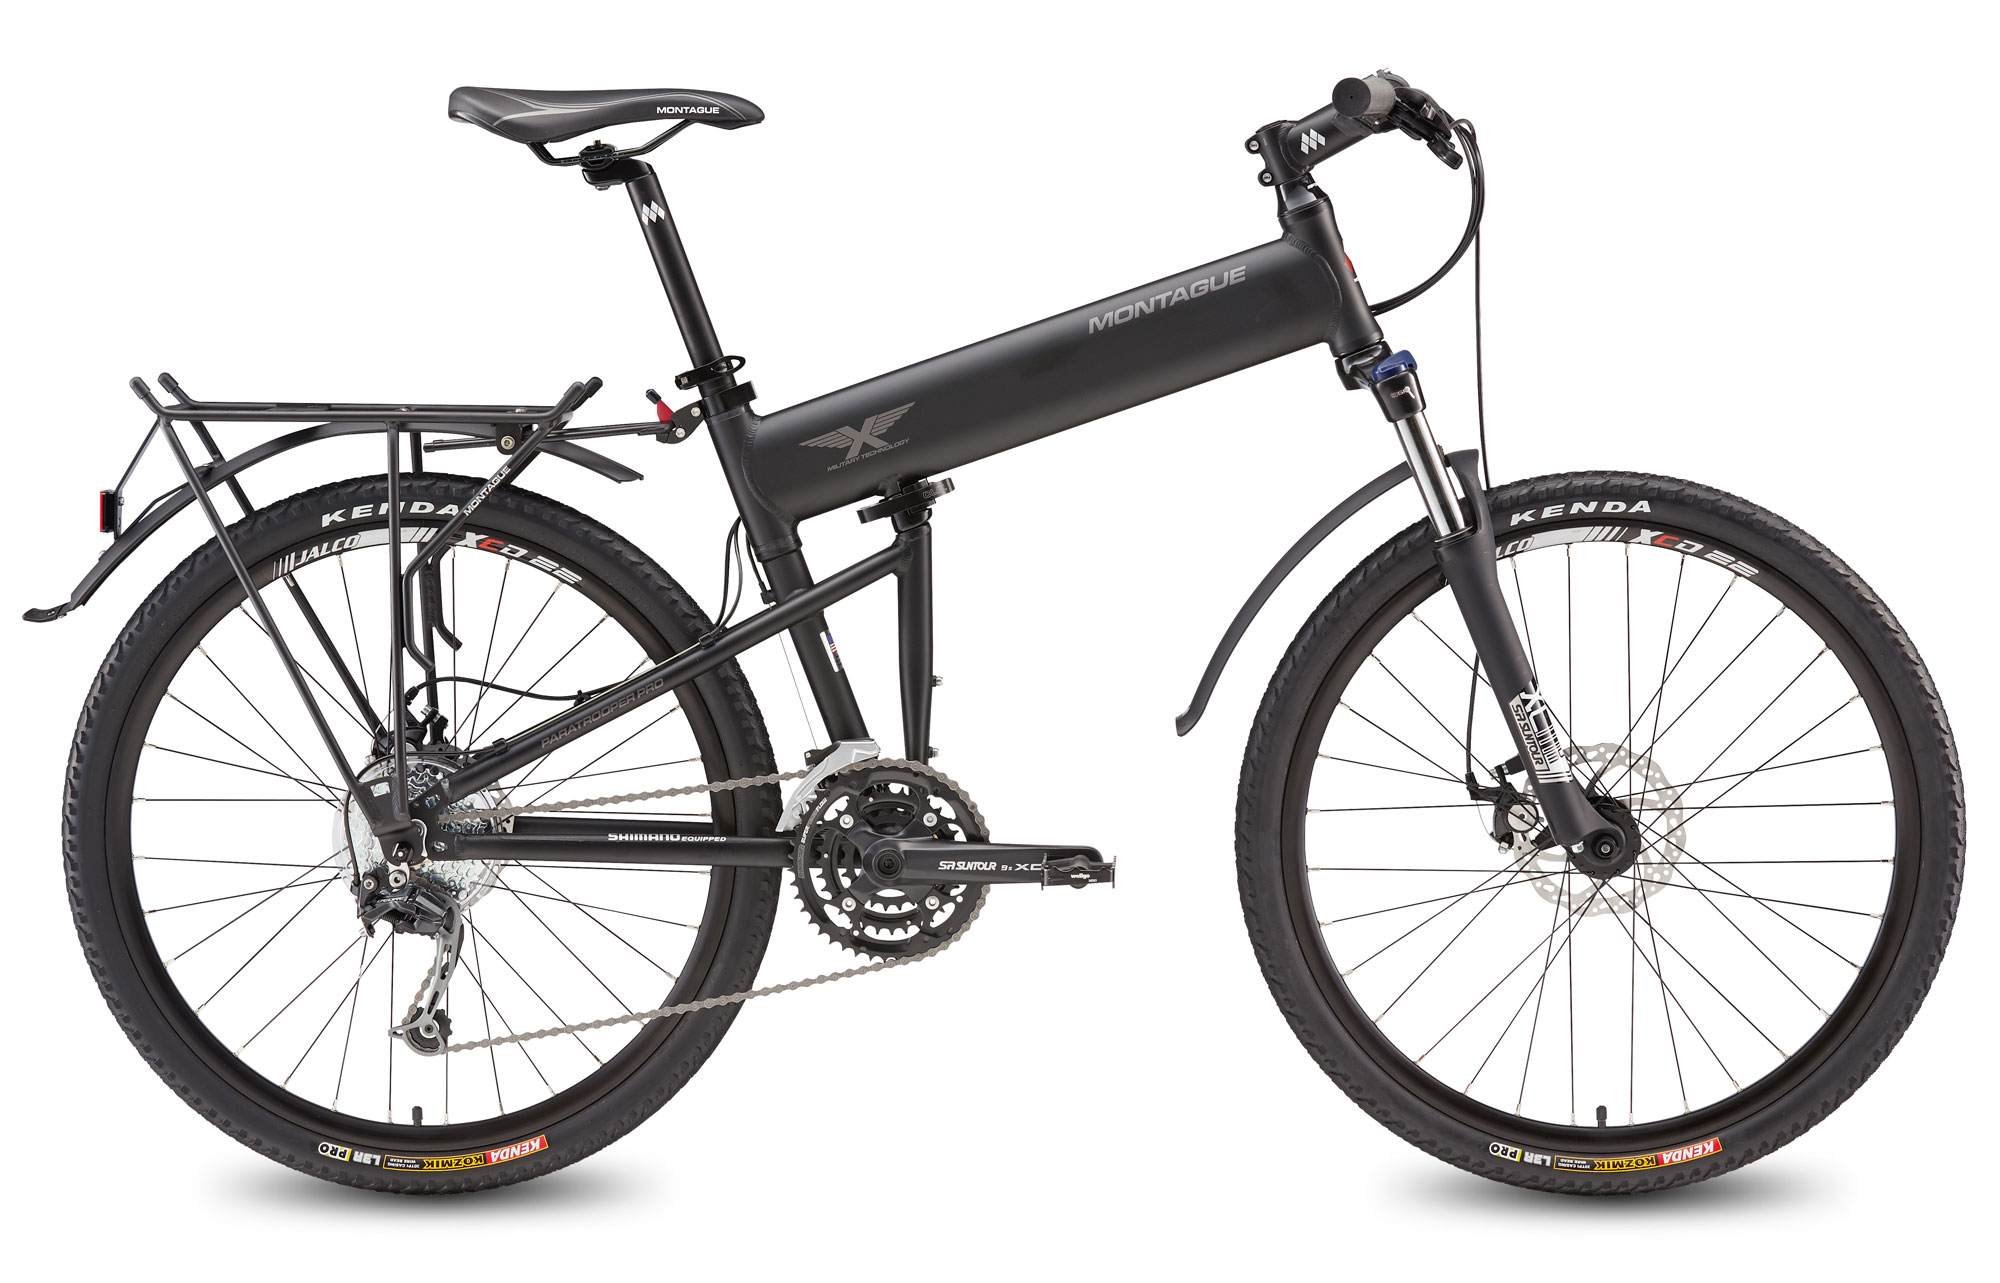 Paratrooper Pro DirectConnect Mountain Folding Bike